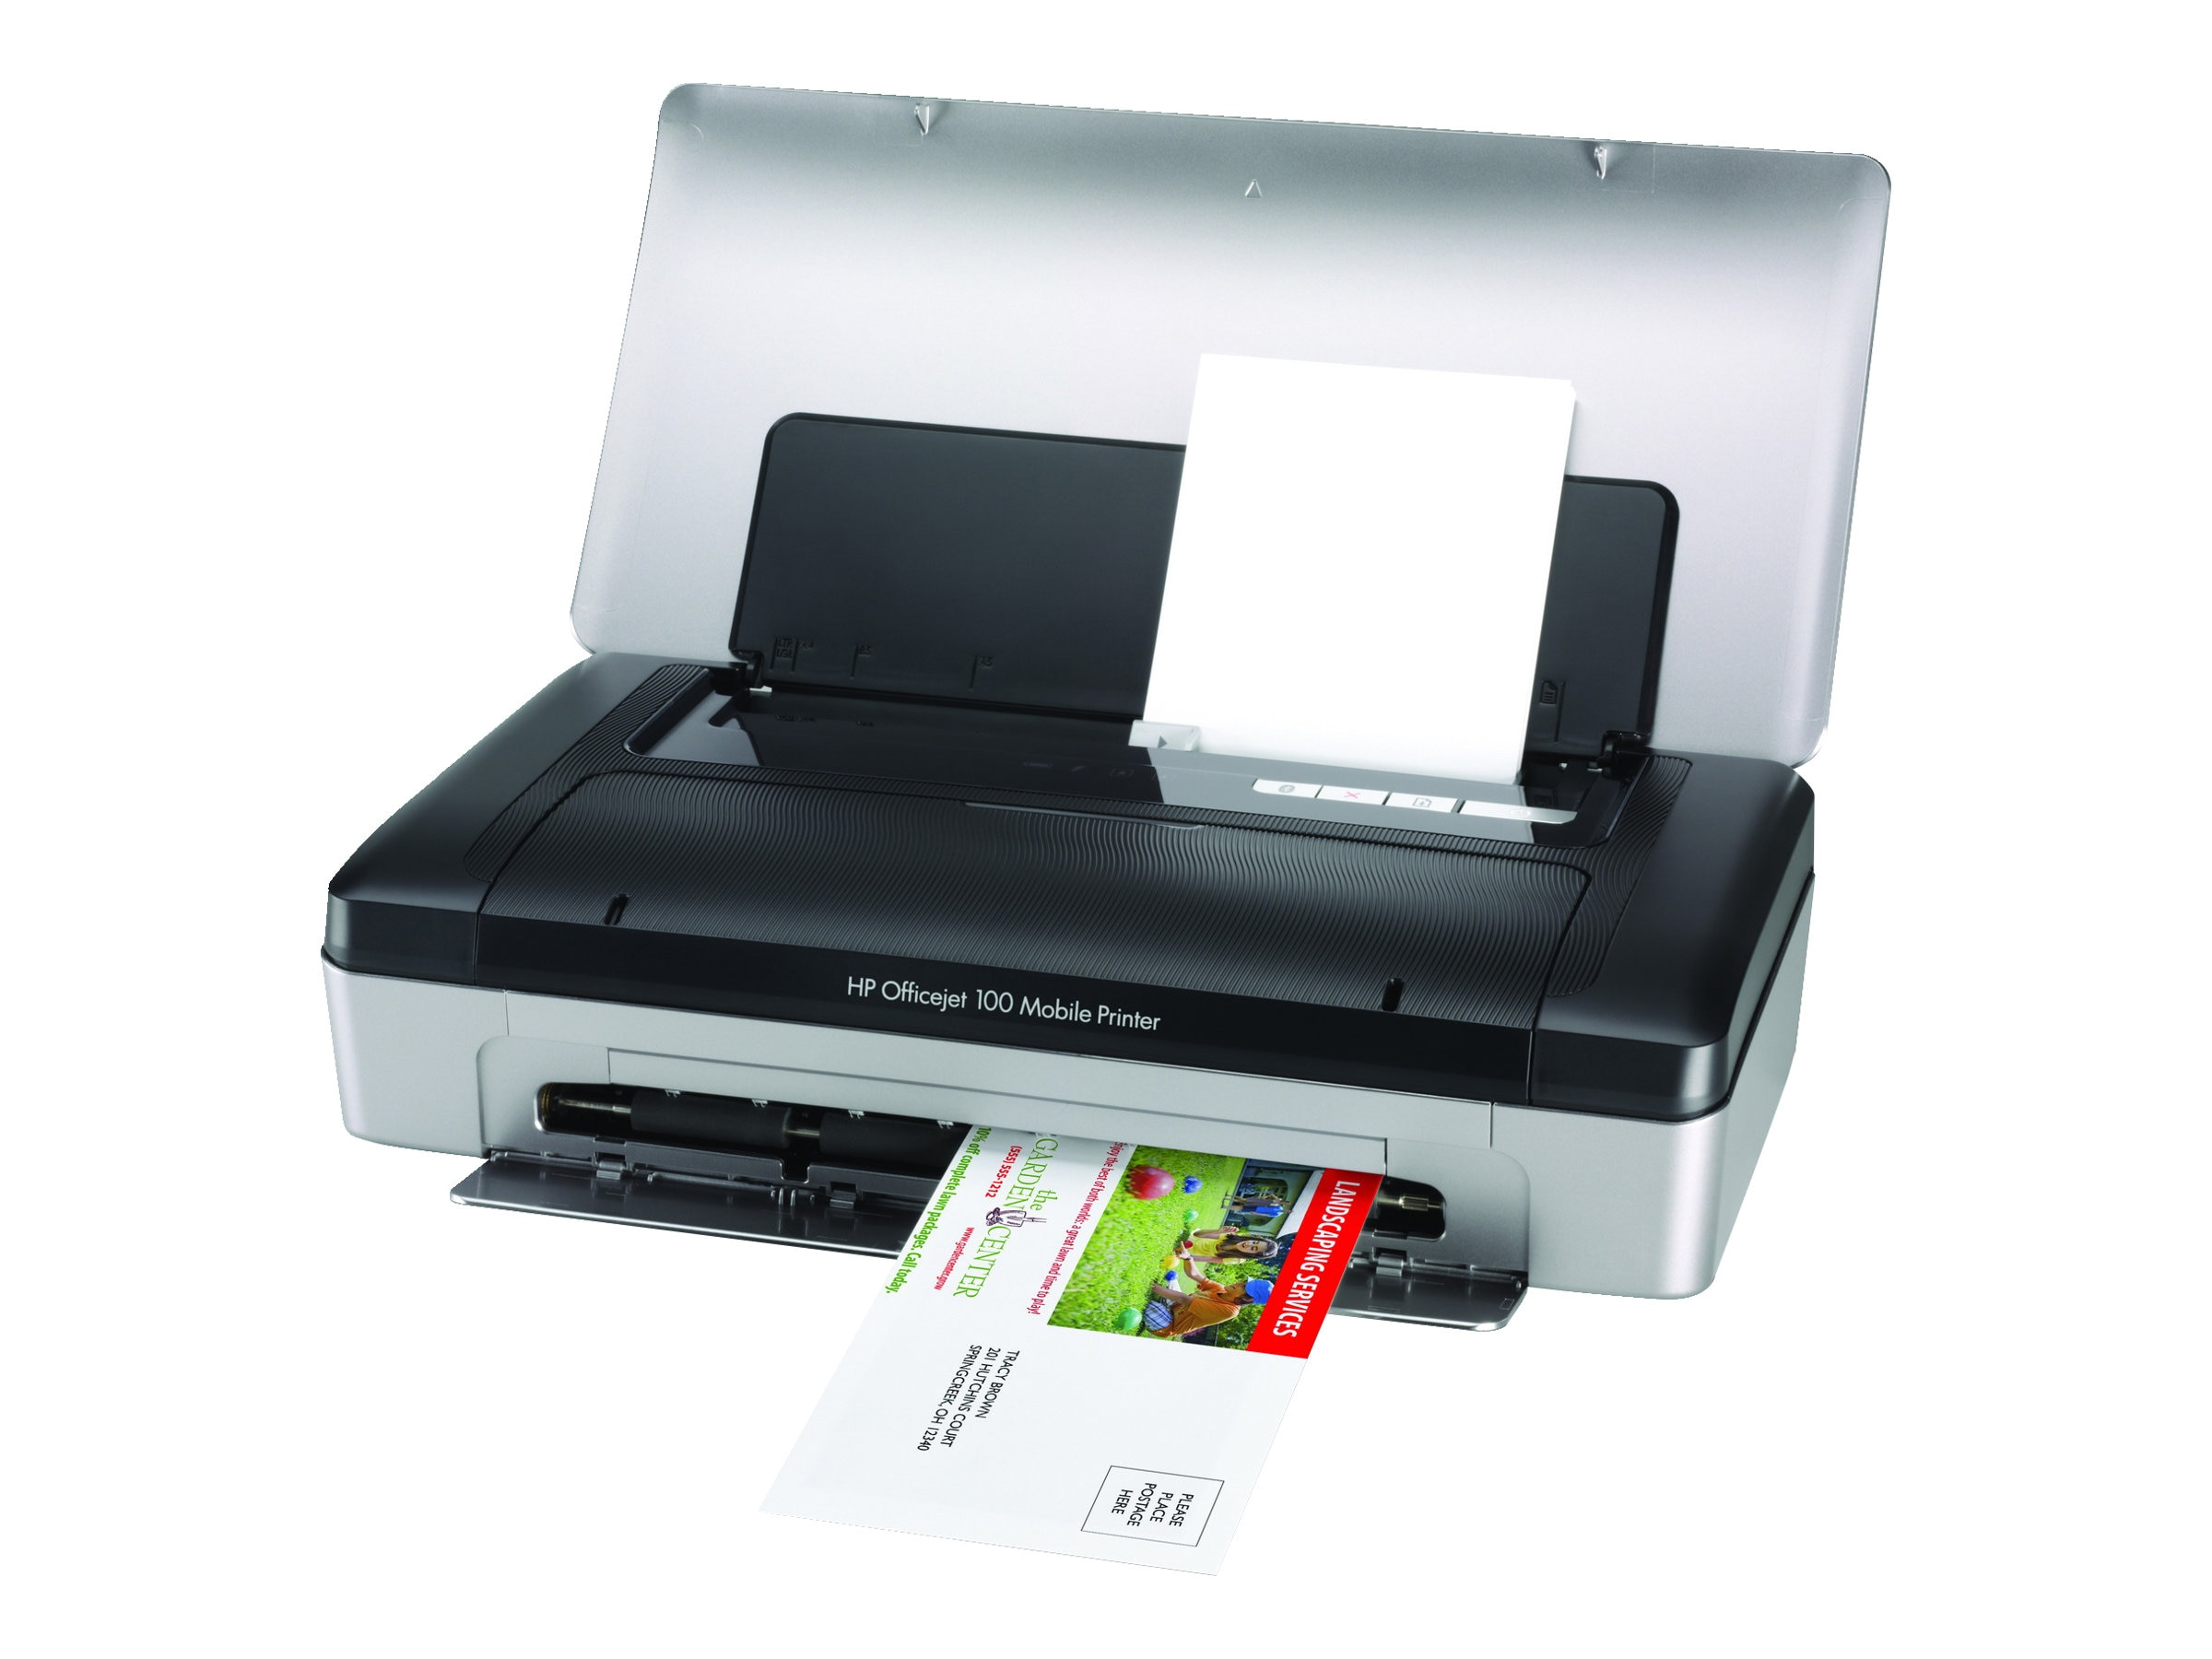 HP Officejet 100 Mobile Printer ($279.95 - $80 Instant Rebate = $199.95 Expires 04 30 2016), CN551A#B1H, 12436119, Printers - Ink-jet